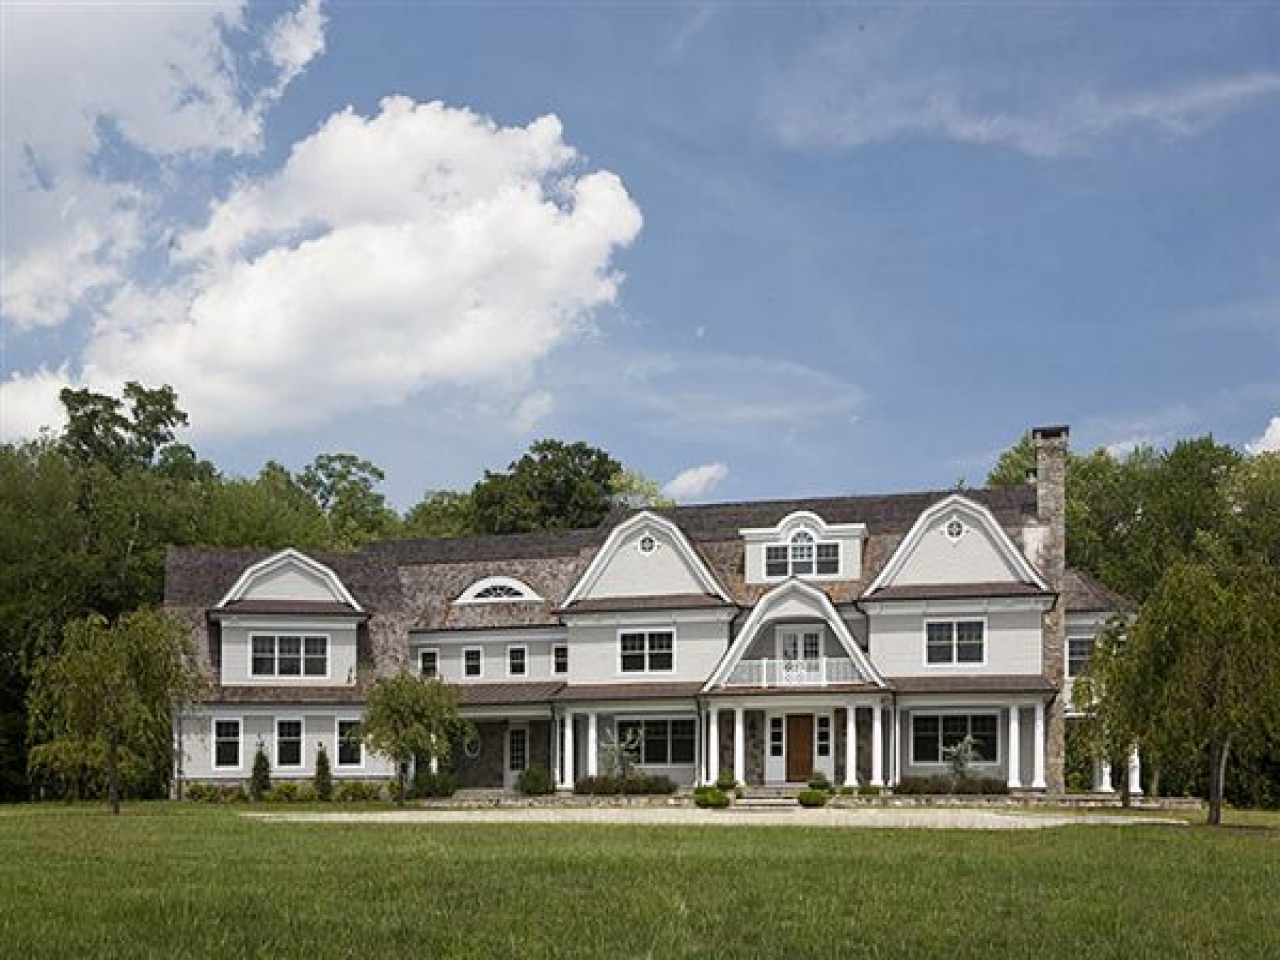 Ranch Home Plans Shingle Style on luxury shingle style home plans, prairie style ranch home plans, narrow lot ranch home plans, luxury craftsman style home plans,